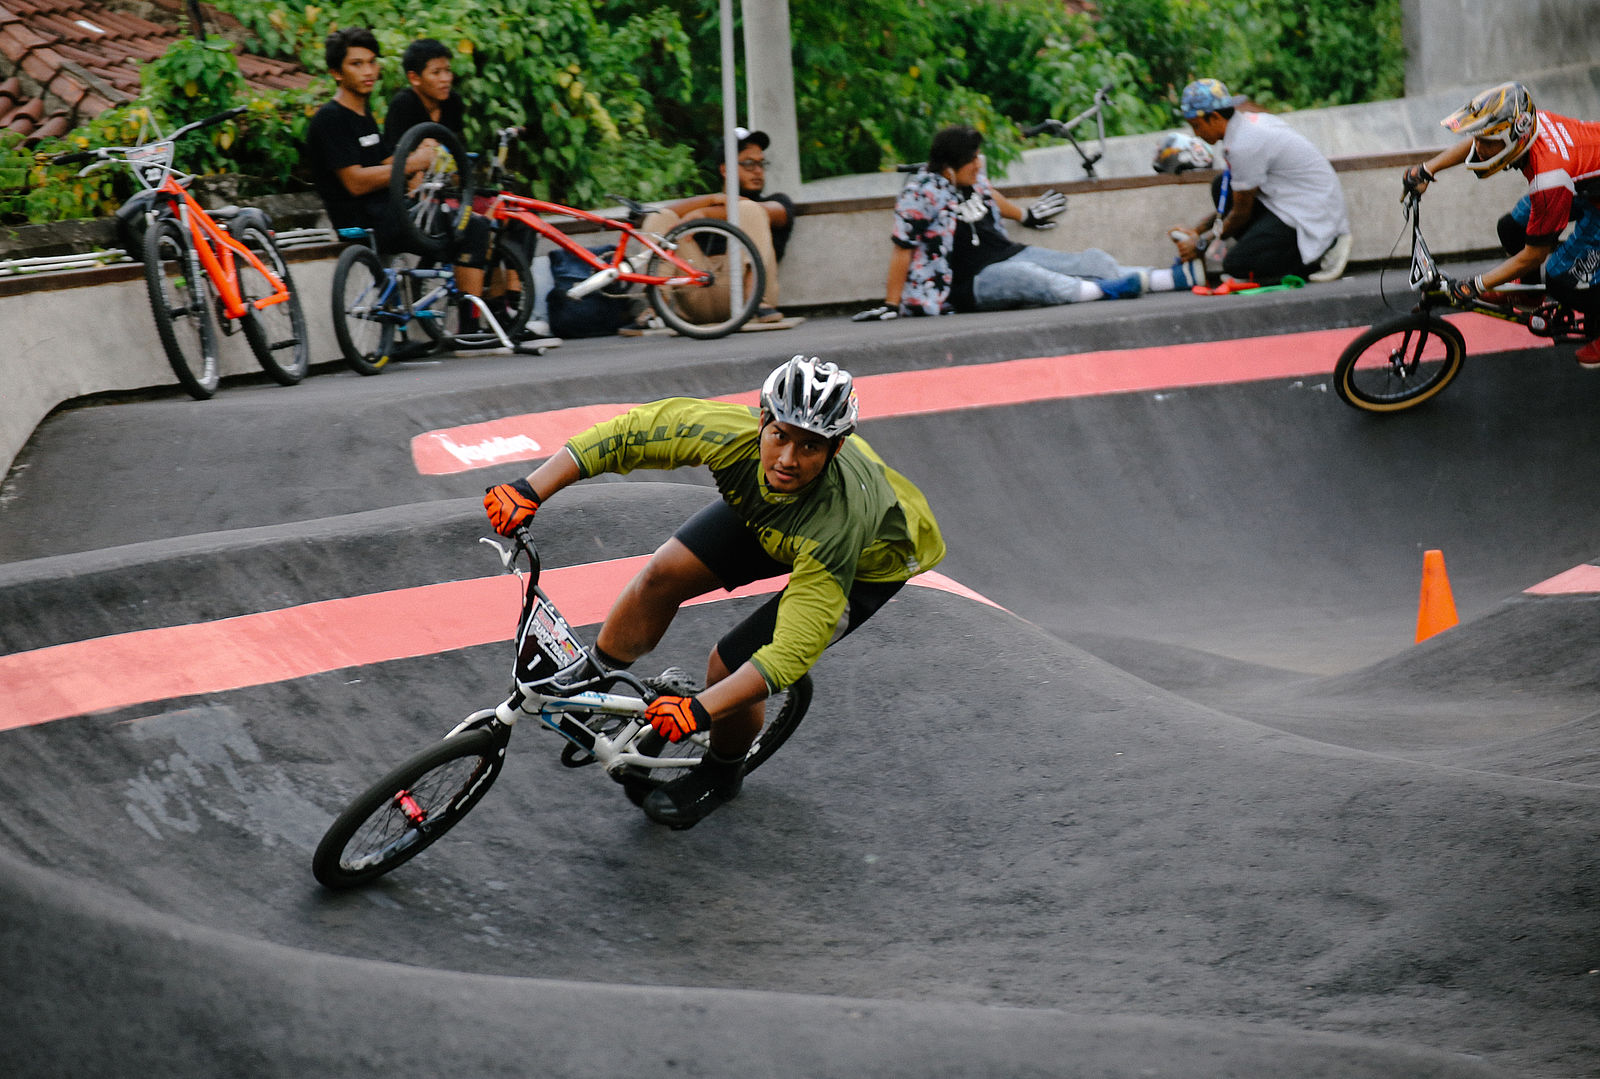 pump track world champion bali